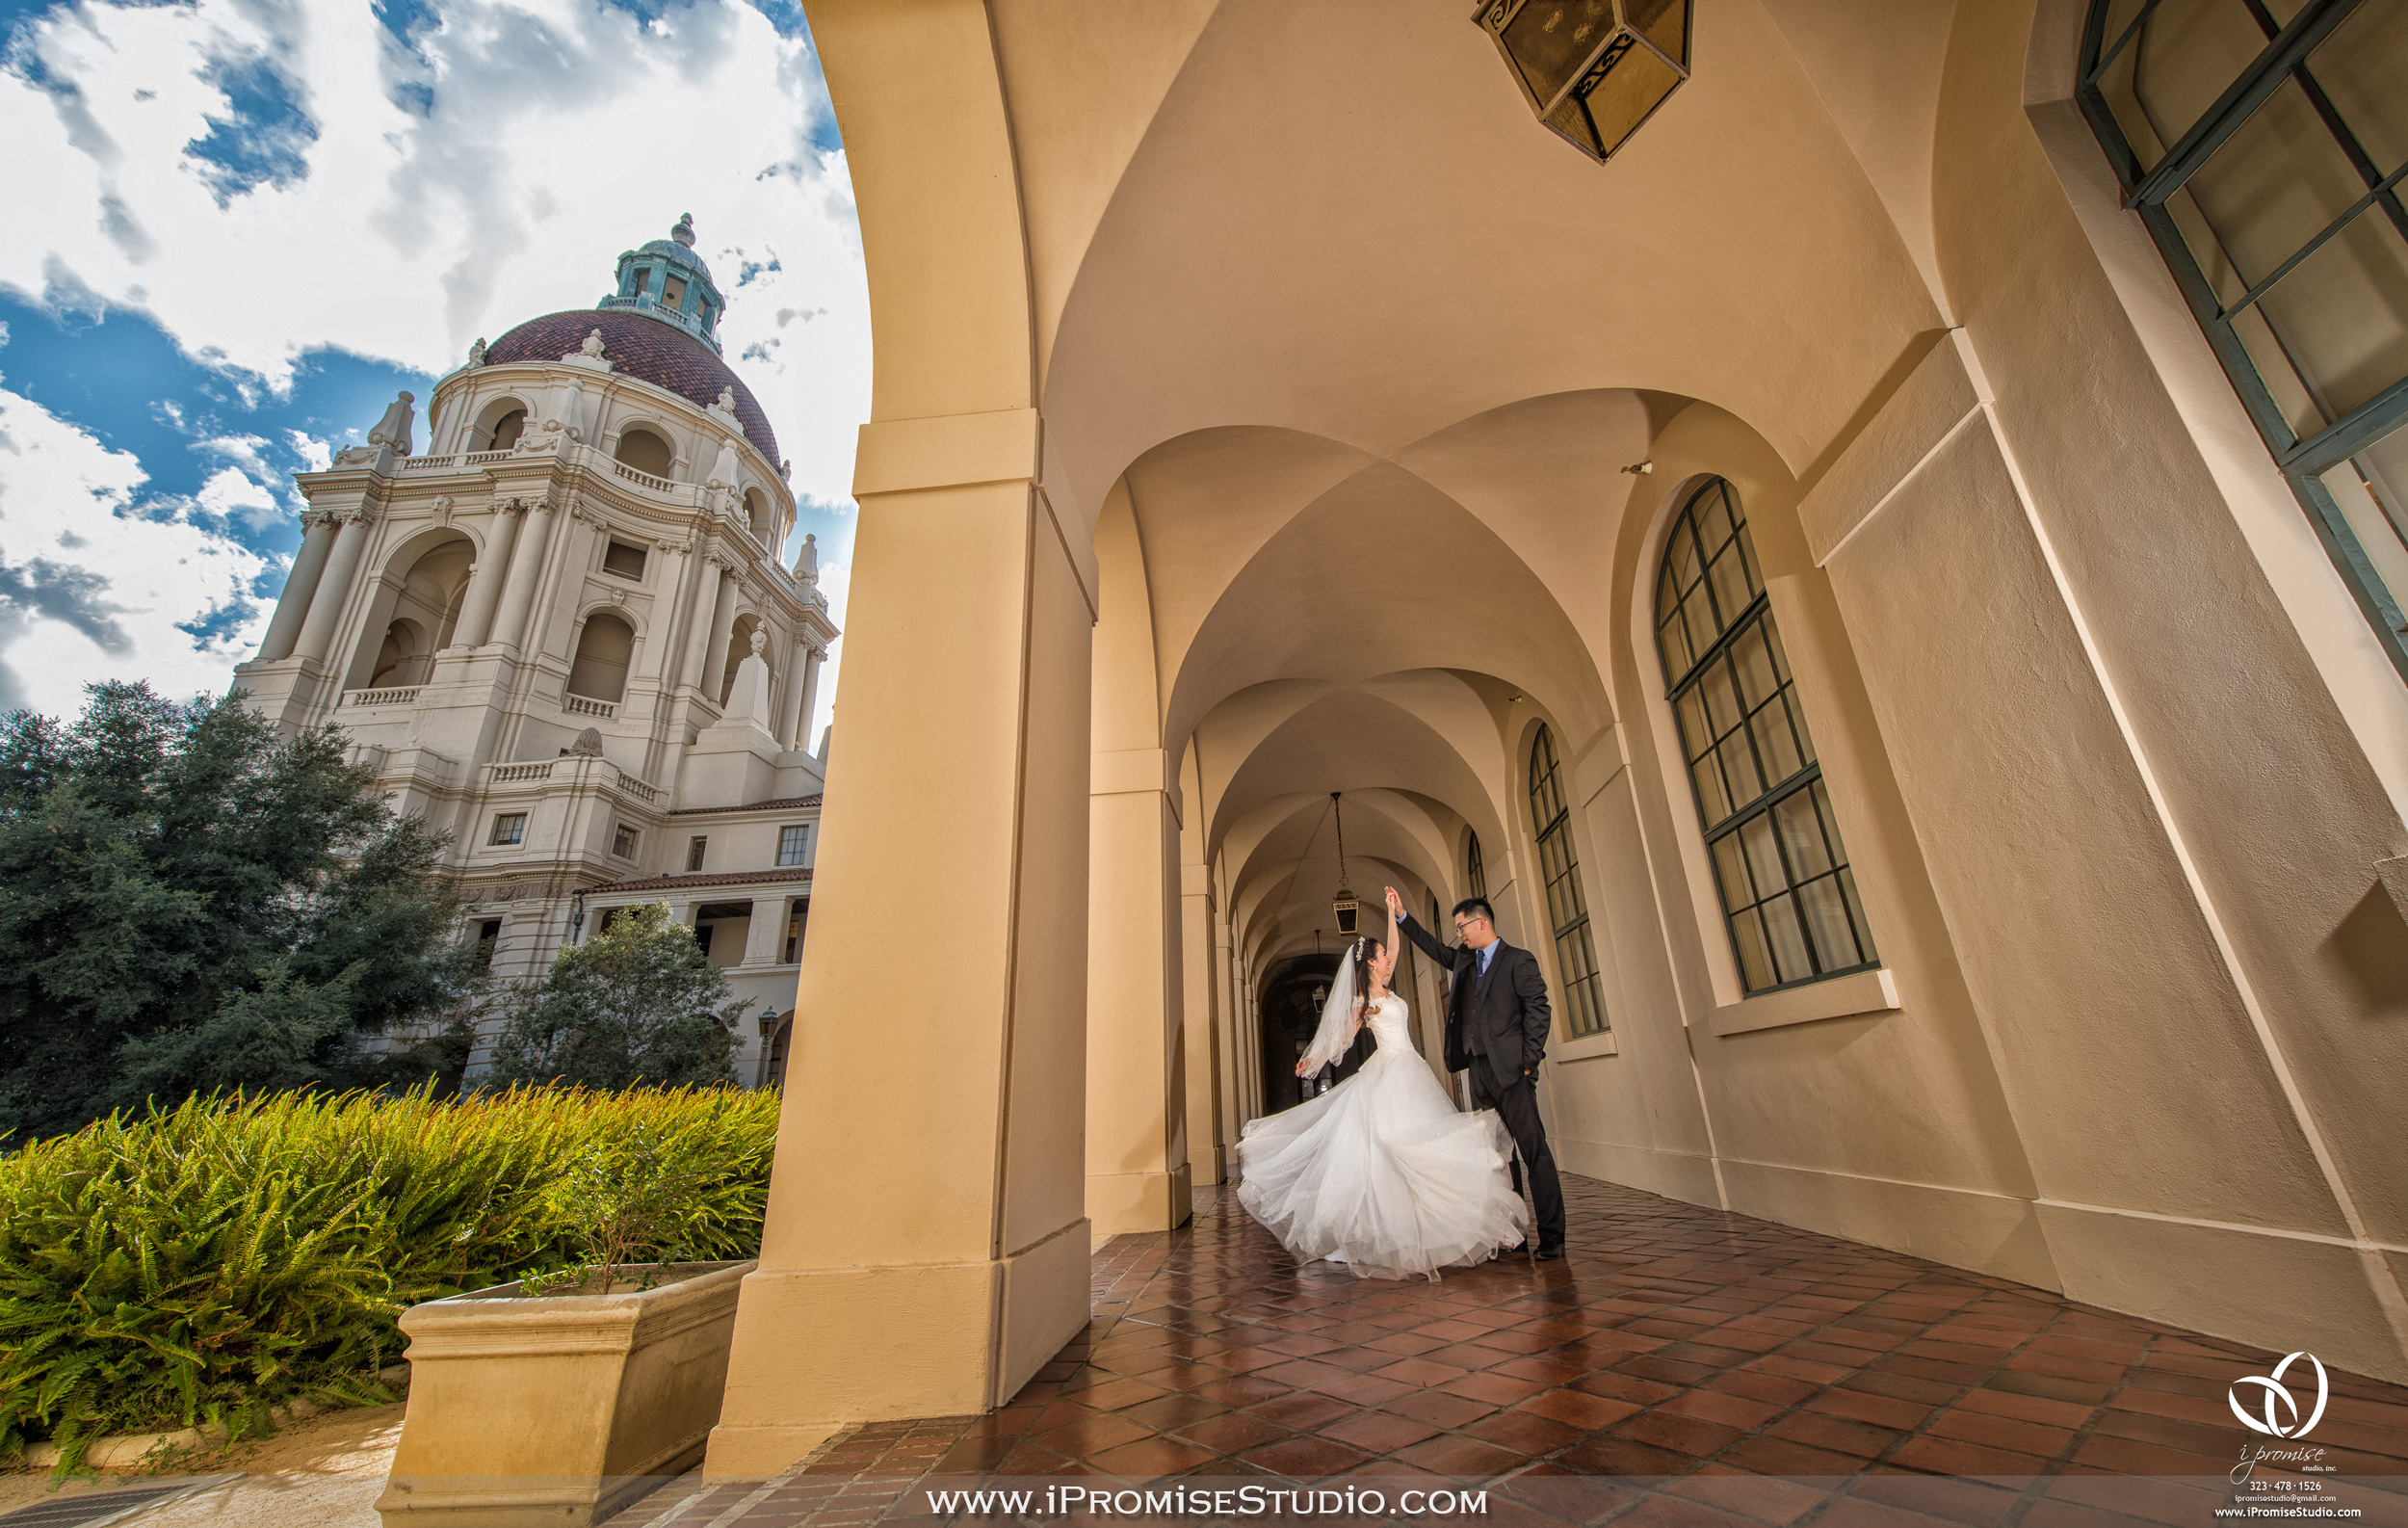 Pasadena Cityhall engagement wedding 16.JPG